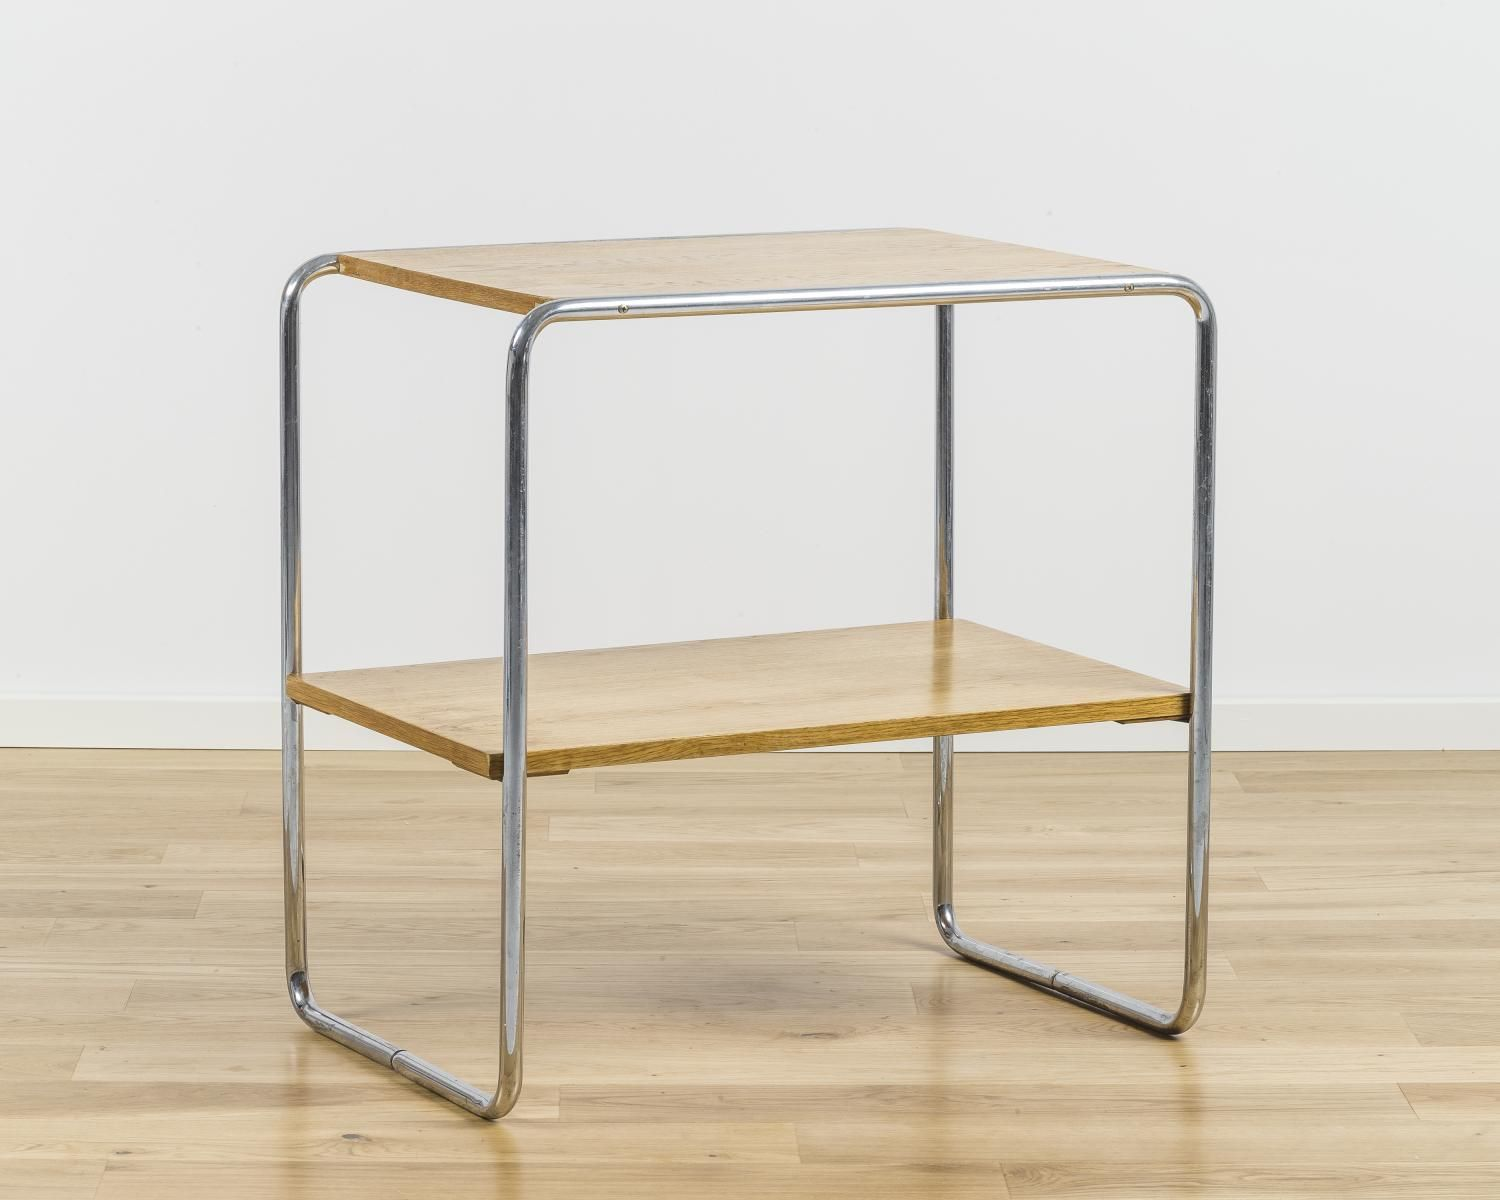 Vintage B12 Table by Marcel Breuer for Bauhaus